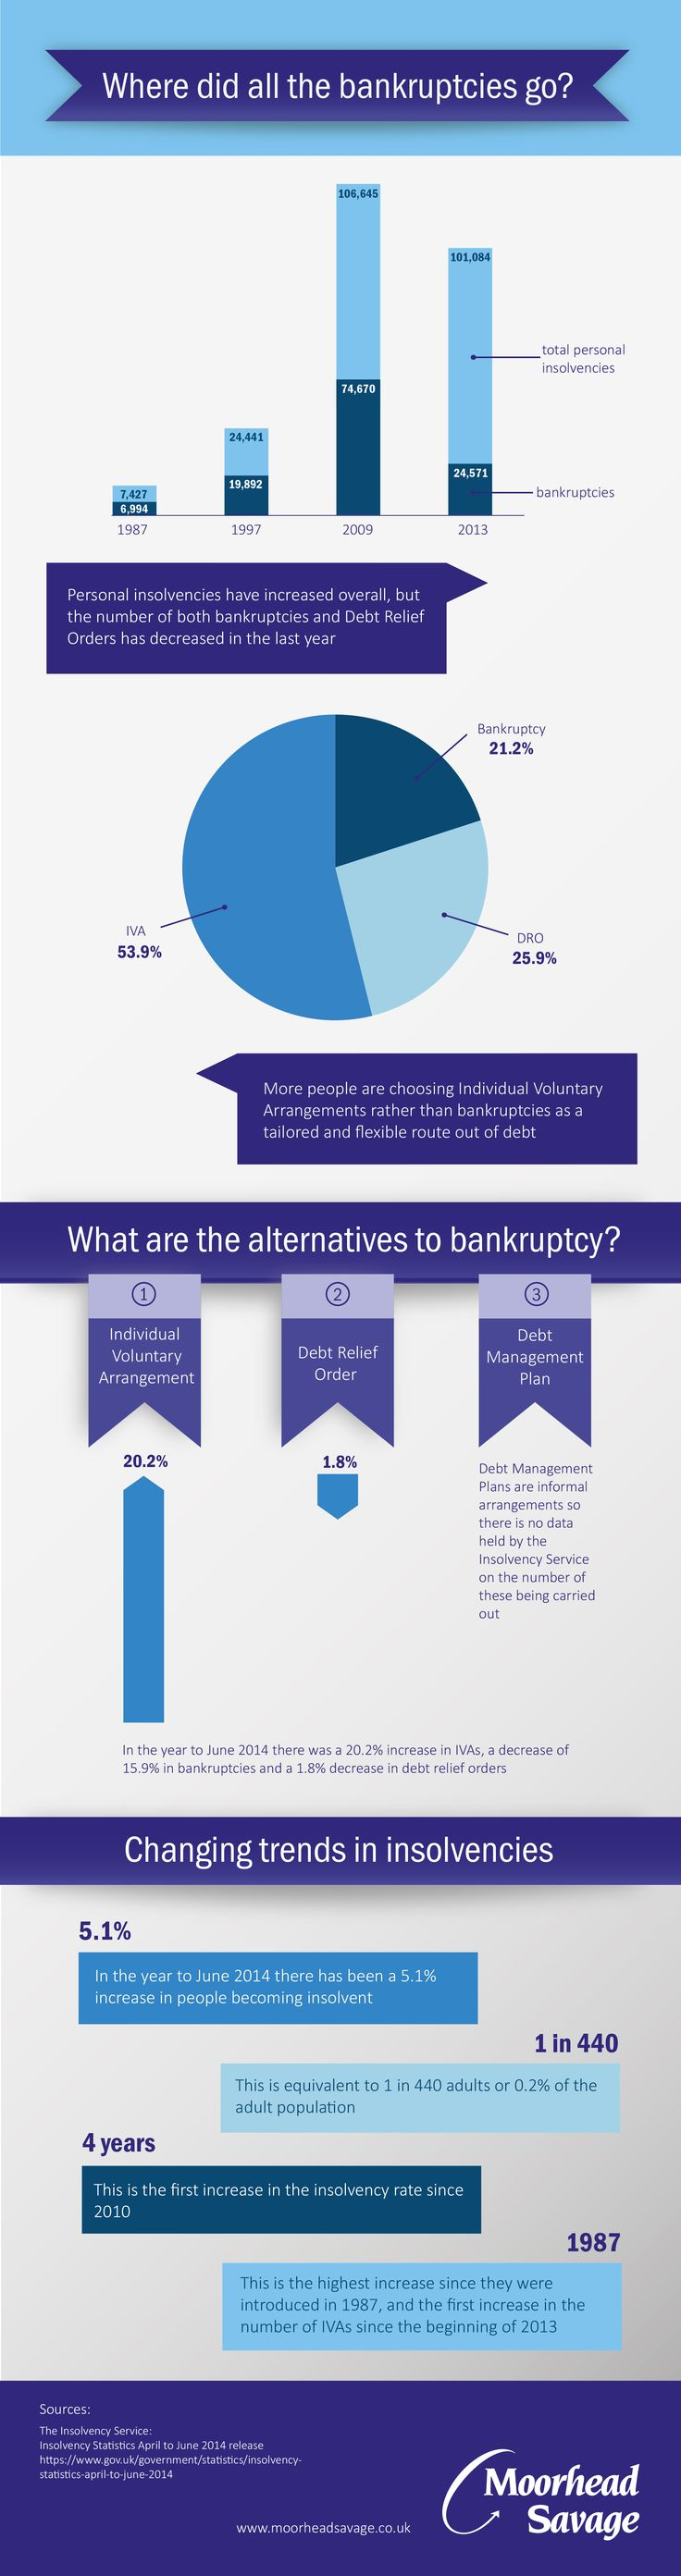 Infographic: Where did all the bankruptcies go?  Read the blog: http://moorheadsavage.co.uk/where-did-all-the-bankruptcies-go/